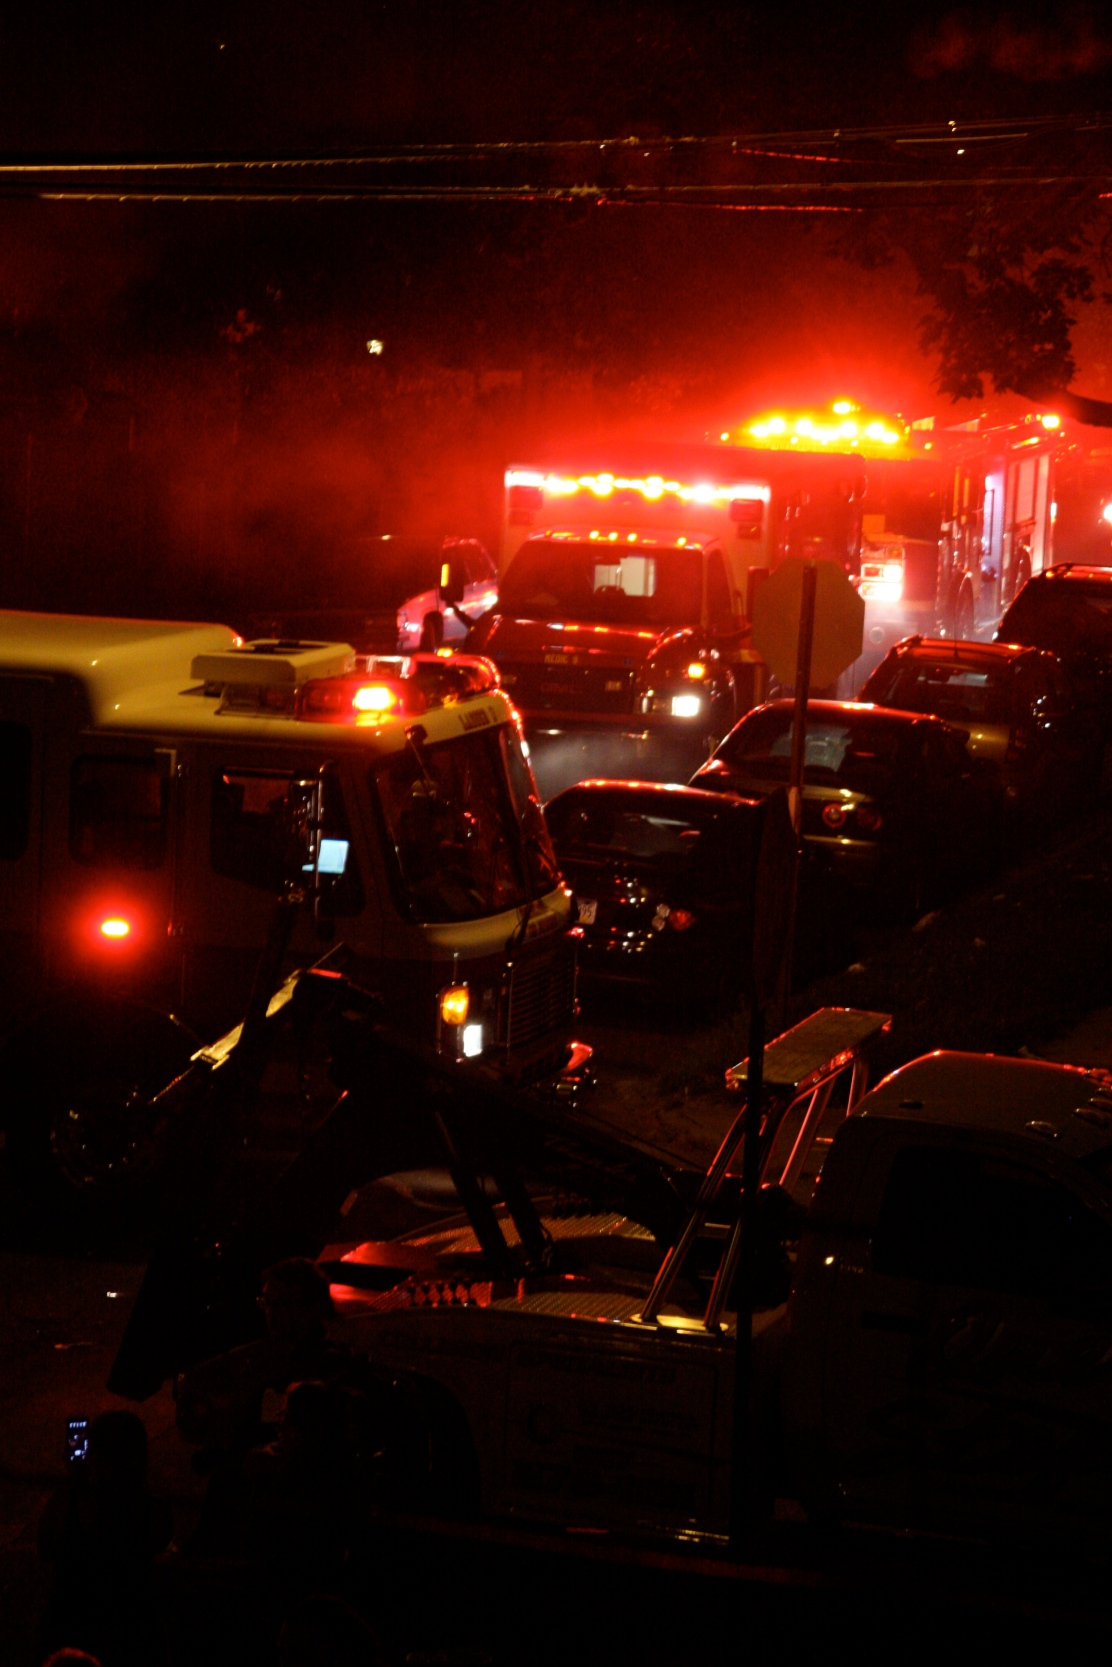 Several firetrucks and ambulances line the street to douse the flames, approximately 15 minutes after the collision. Photo by Kit Friday